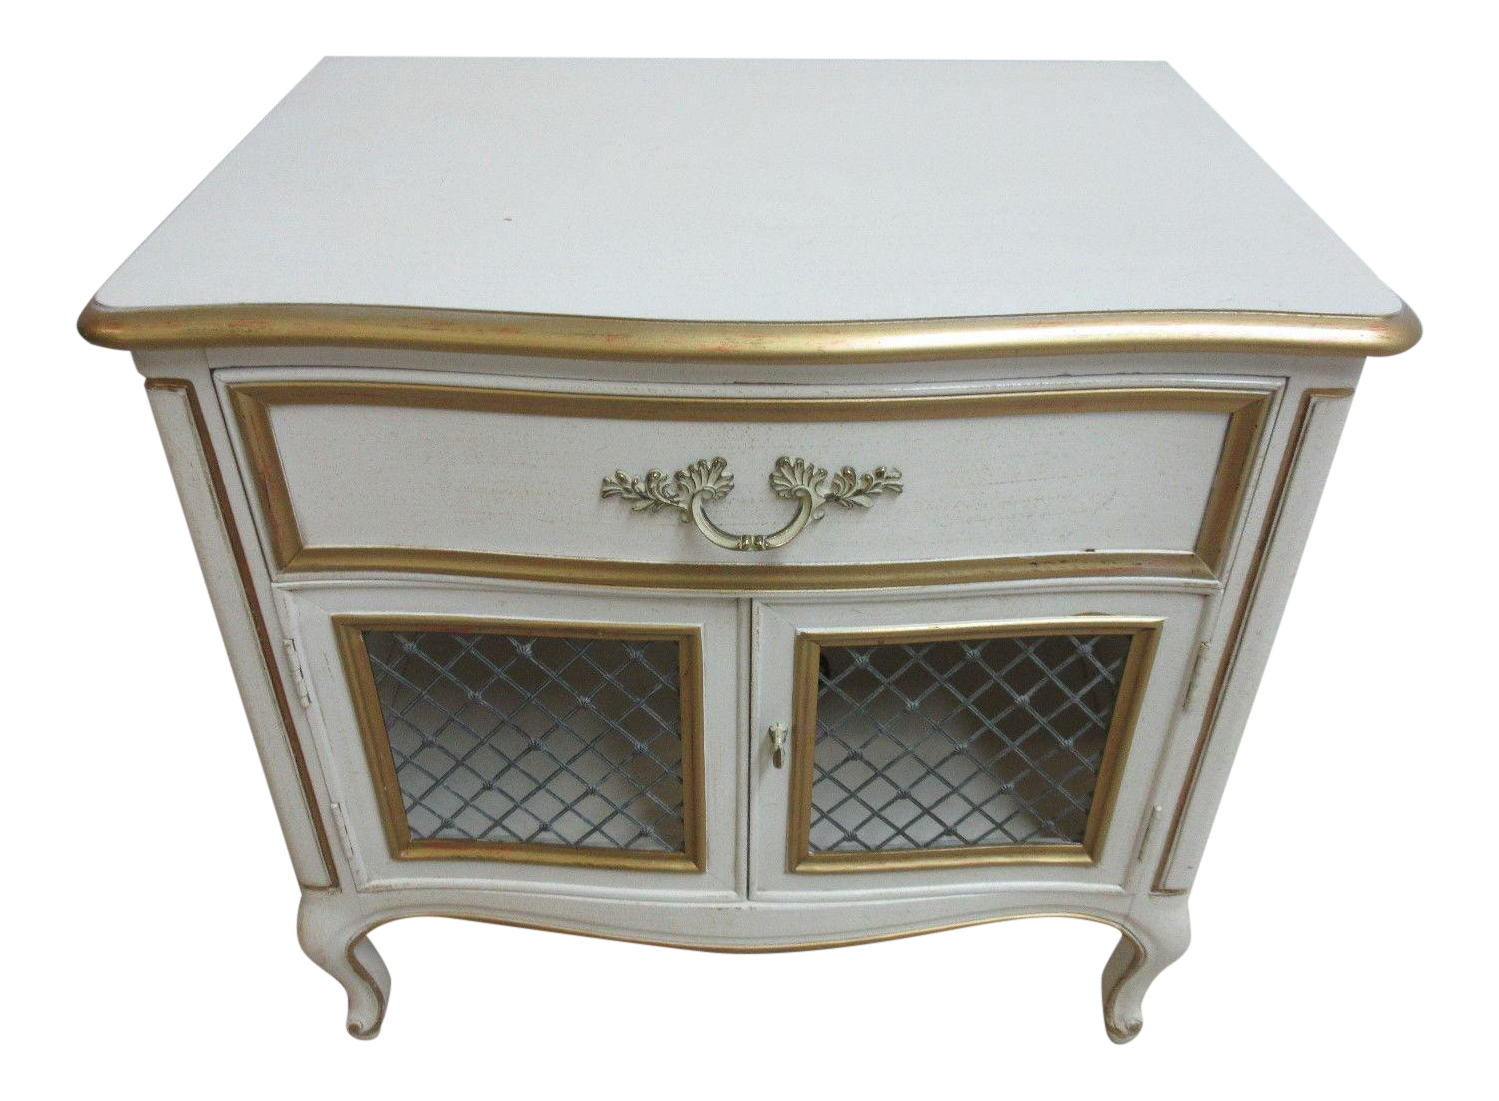 gently used henredon furniture save up to 60 at henredon bedroom furniture pictures amazing home design